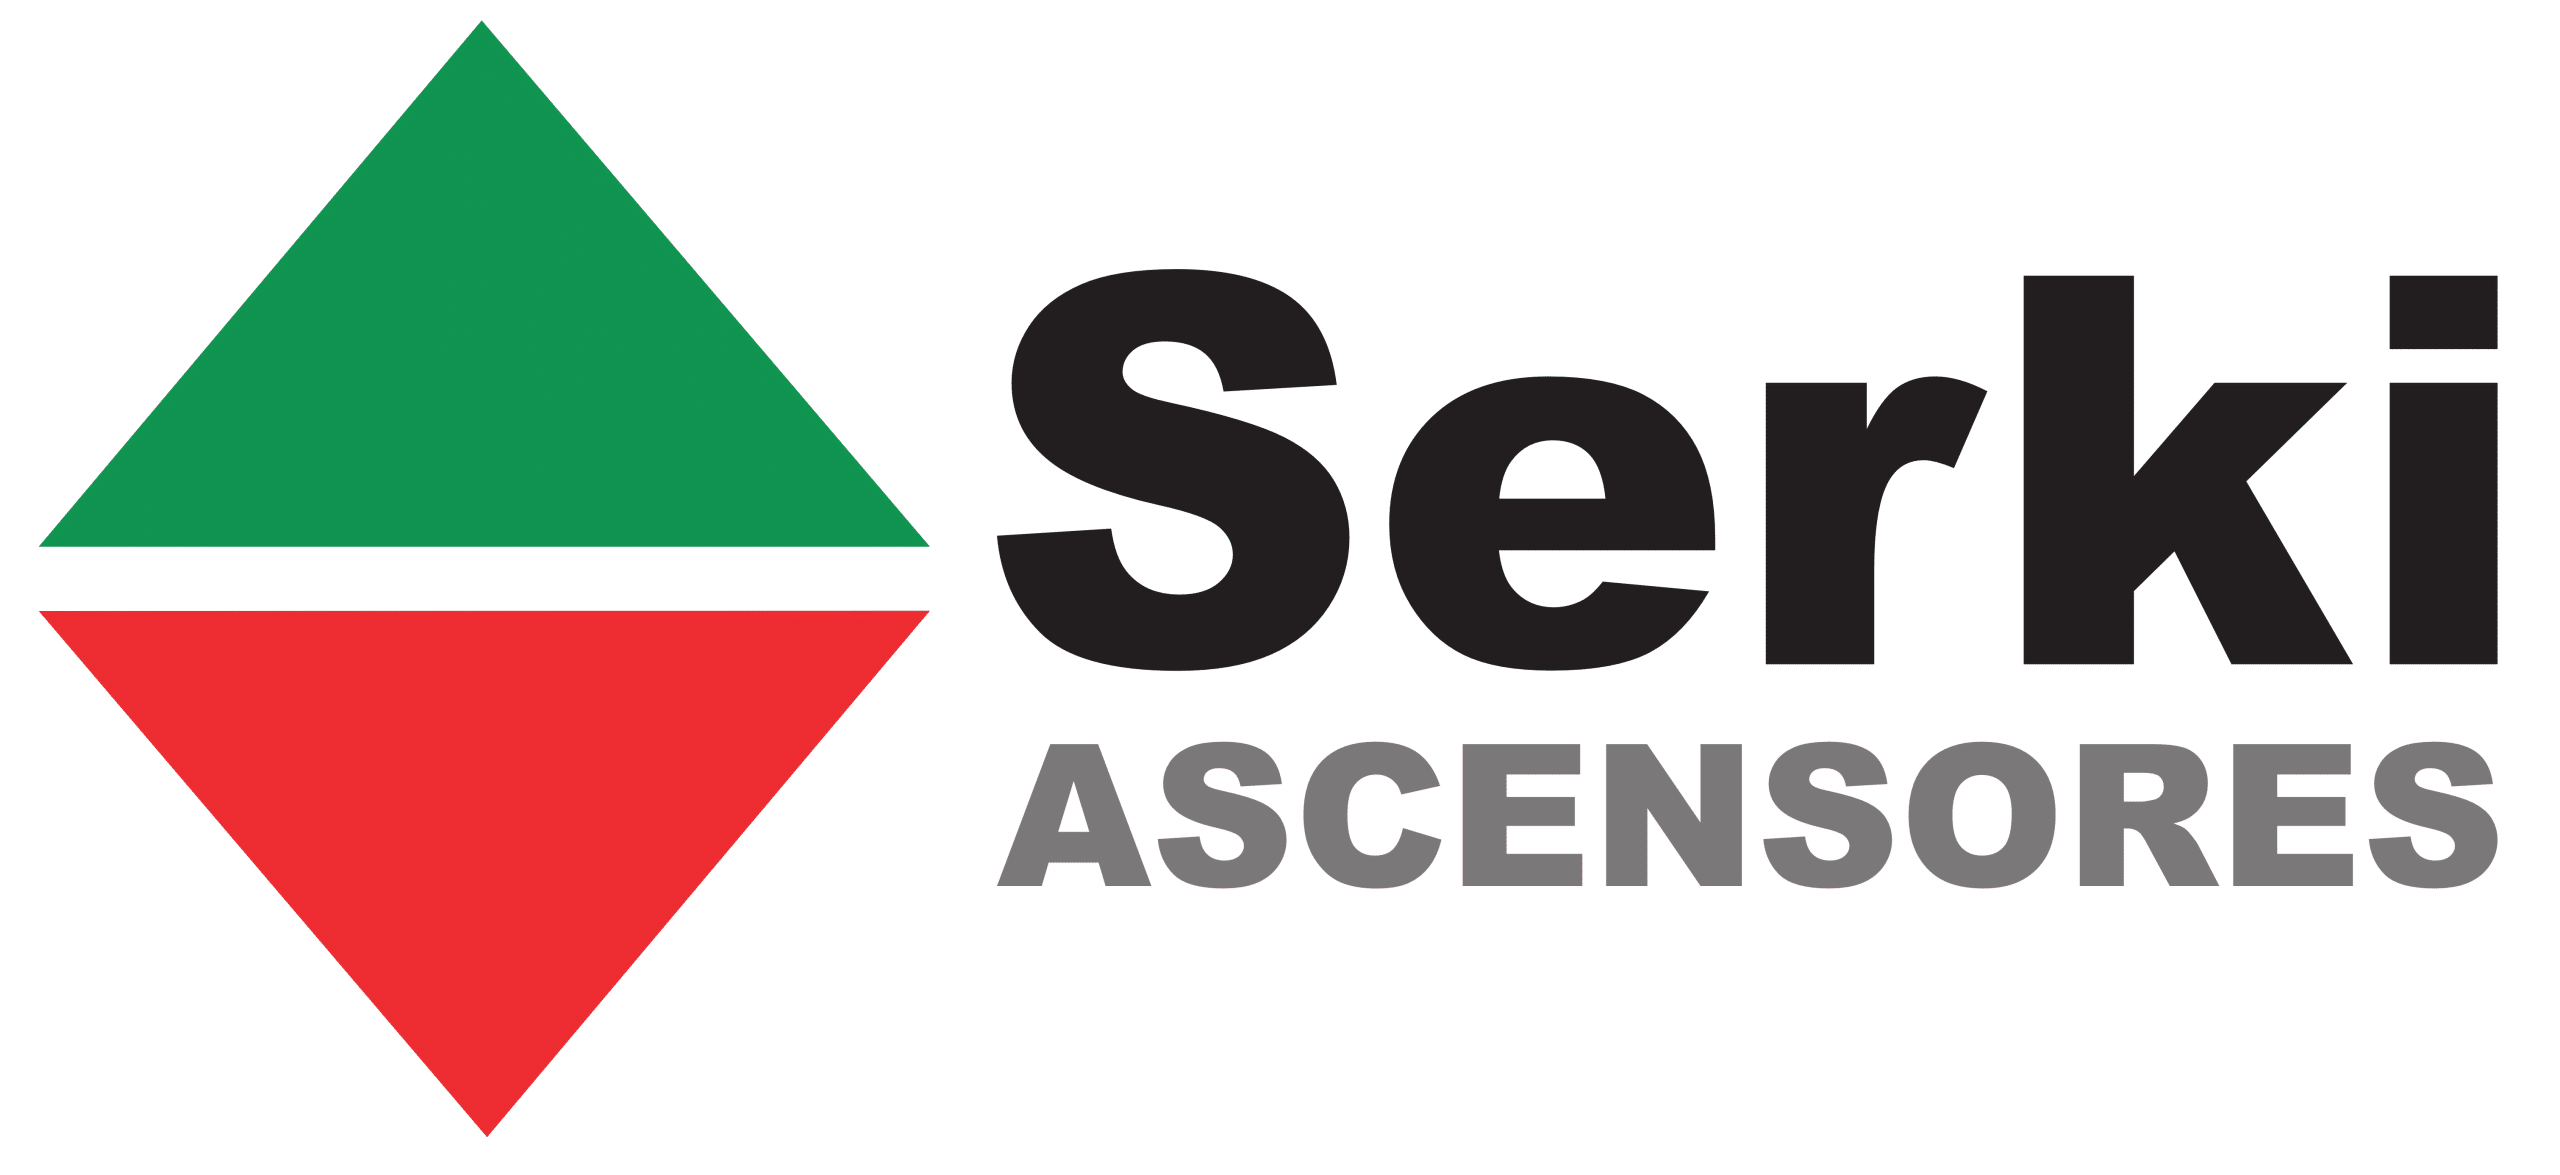 Ascensores Serki